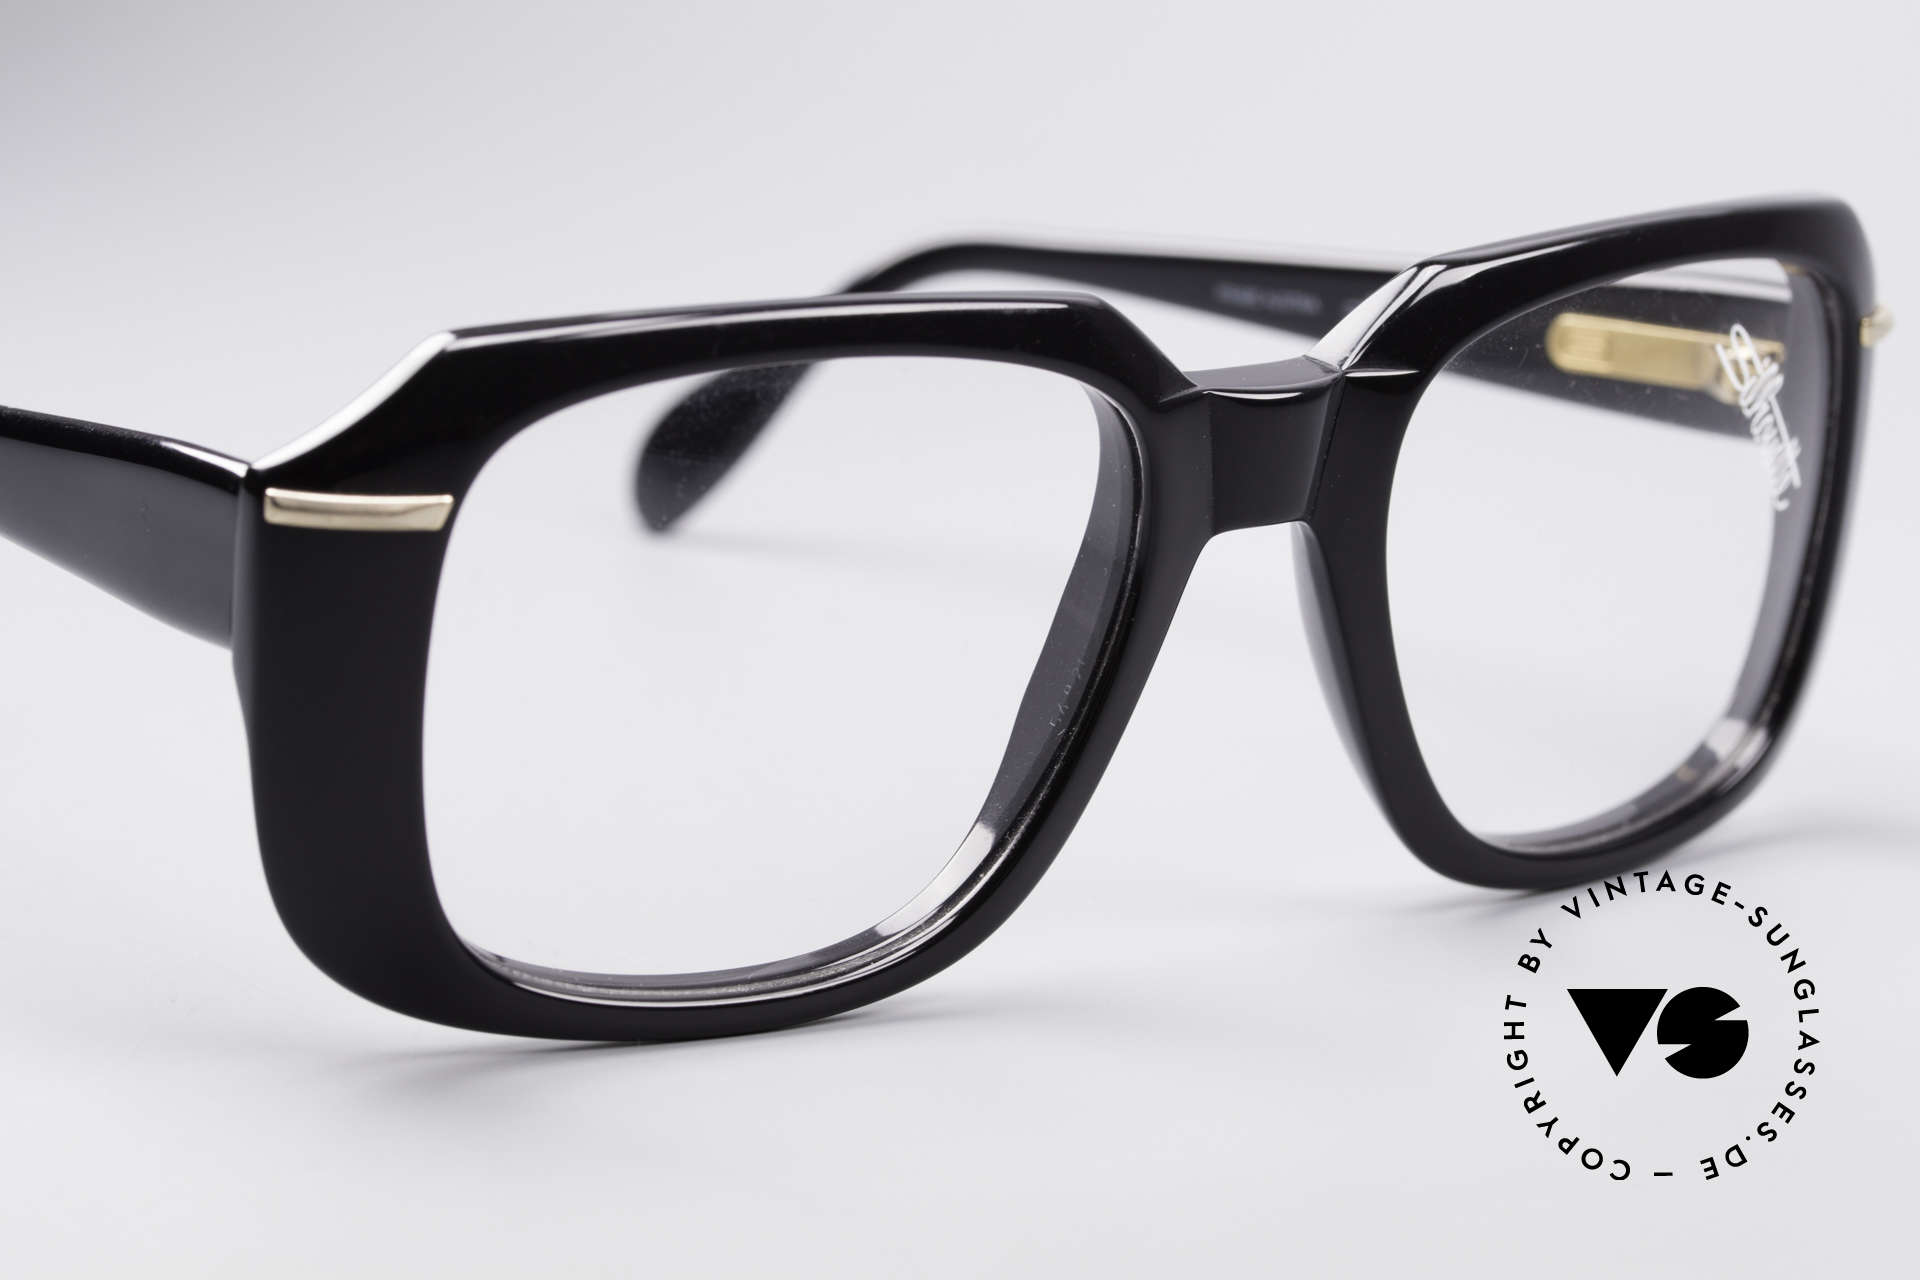 Silhouette M2062 Old School Eyeglasses, new old stock (like all our rare 1980's eyeglasses), Made for Men